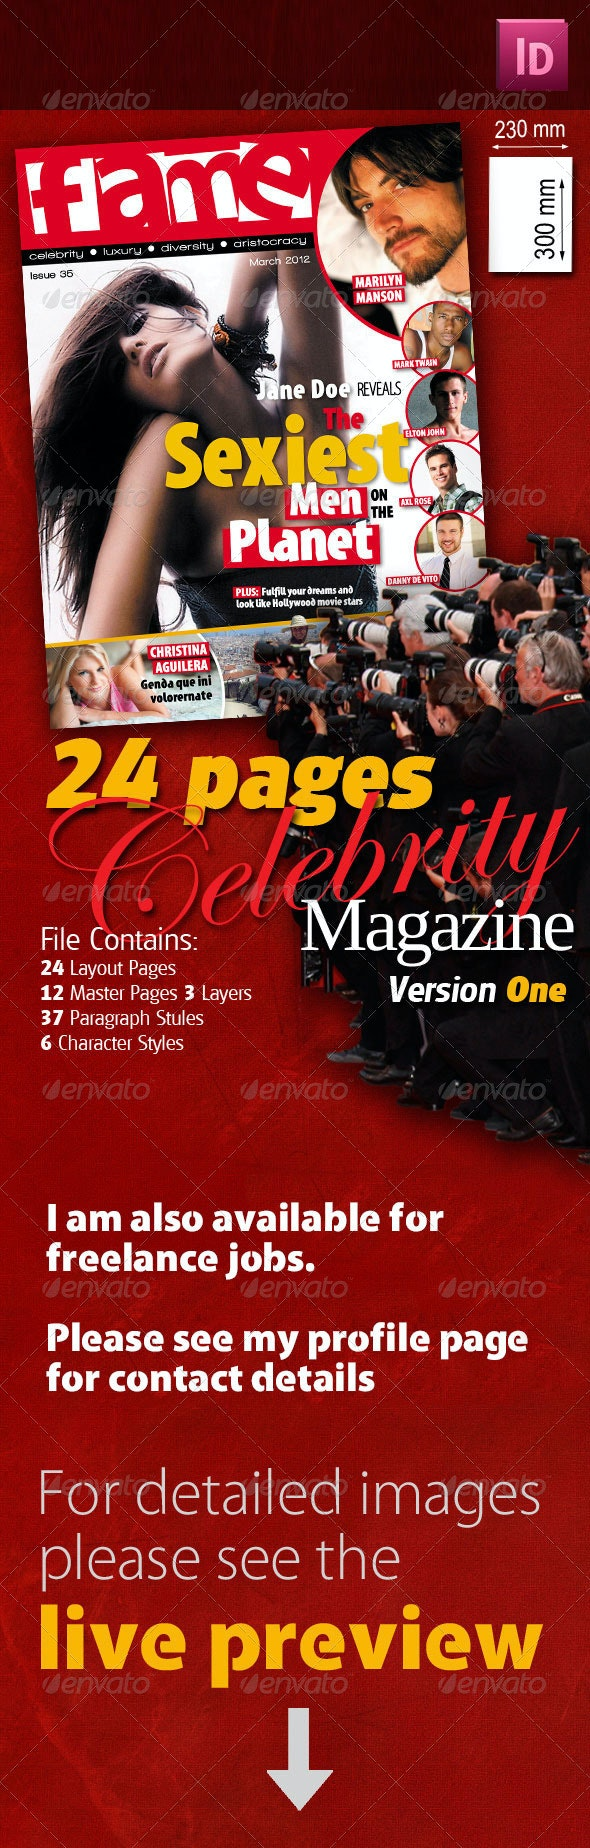 24 Pages Celebrity Magazine Version One